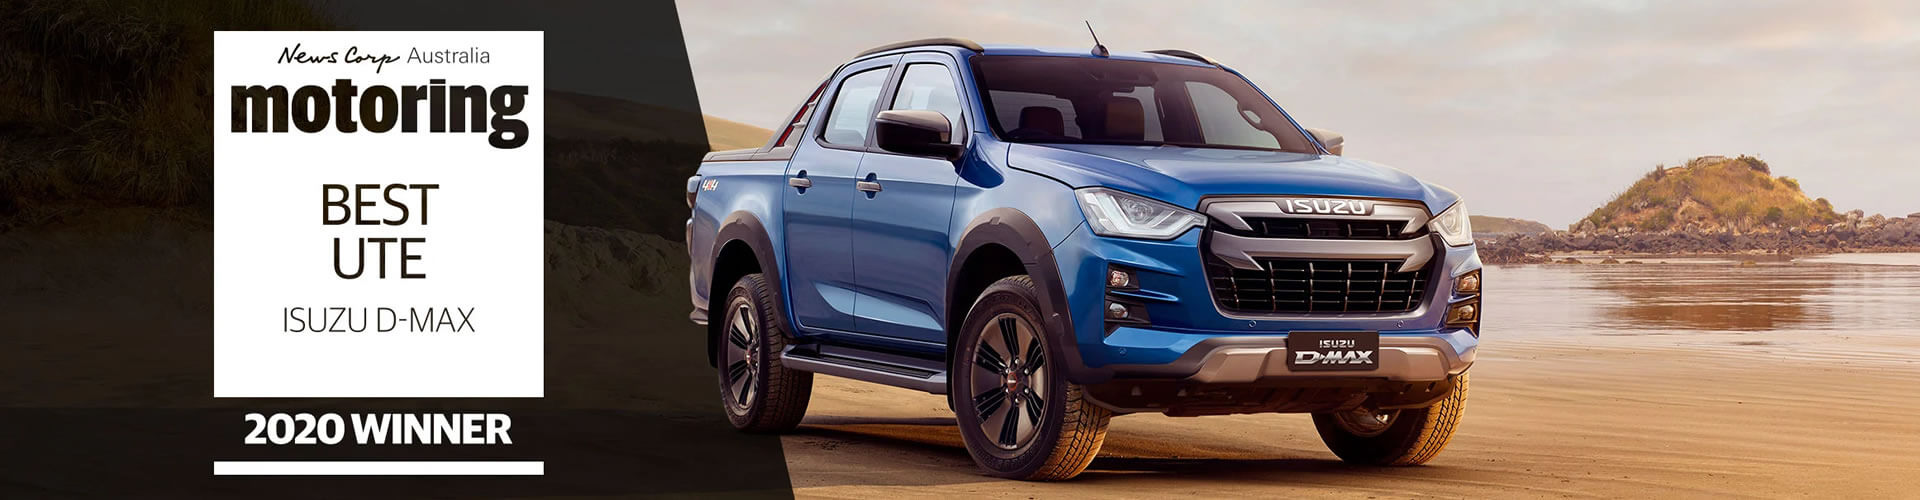 Isuzu D-MAX is News' Ute of the Year